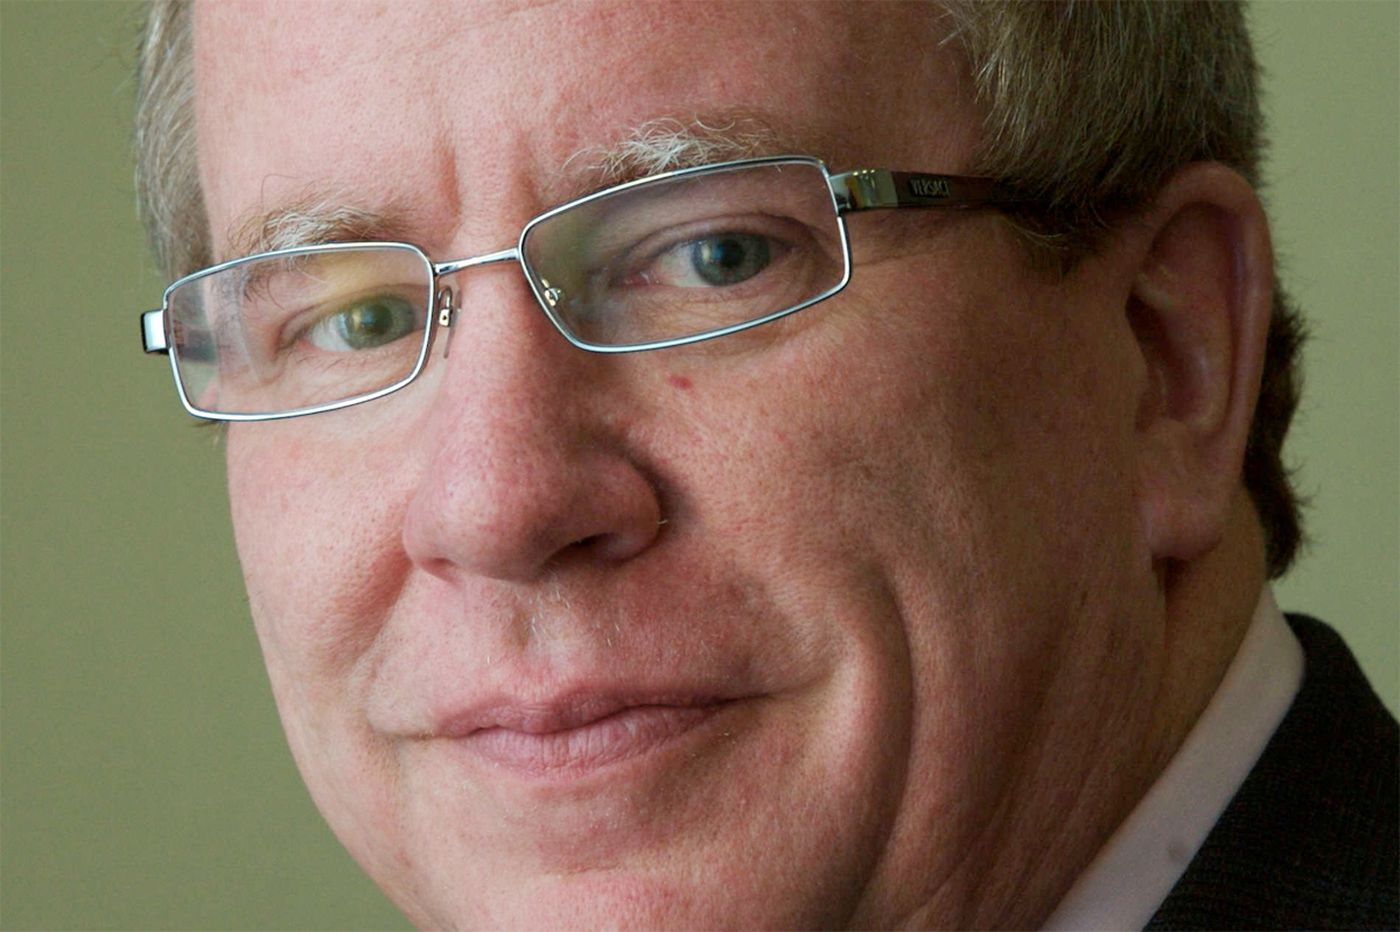 Inquirer Editorial: The Philadelphia Parking Authority should fire Vincent Fenerty for sexual harassment